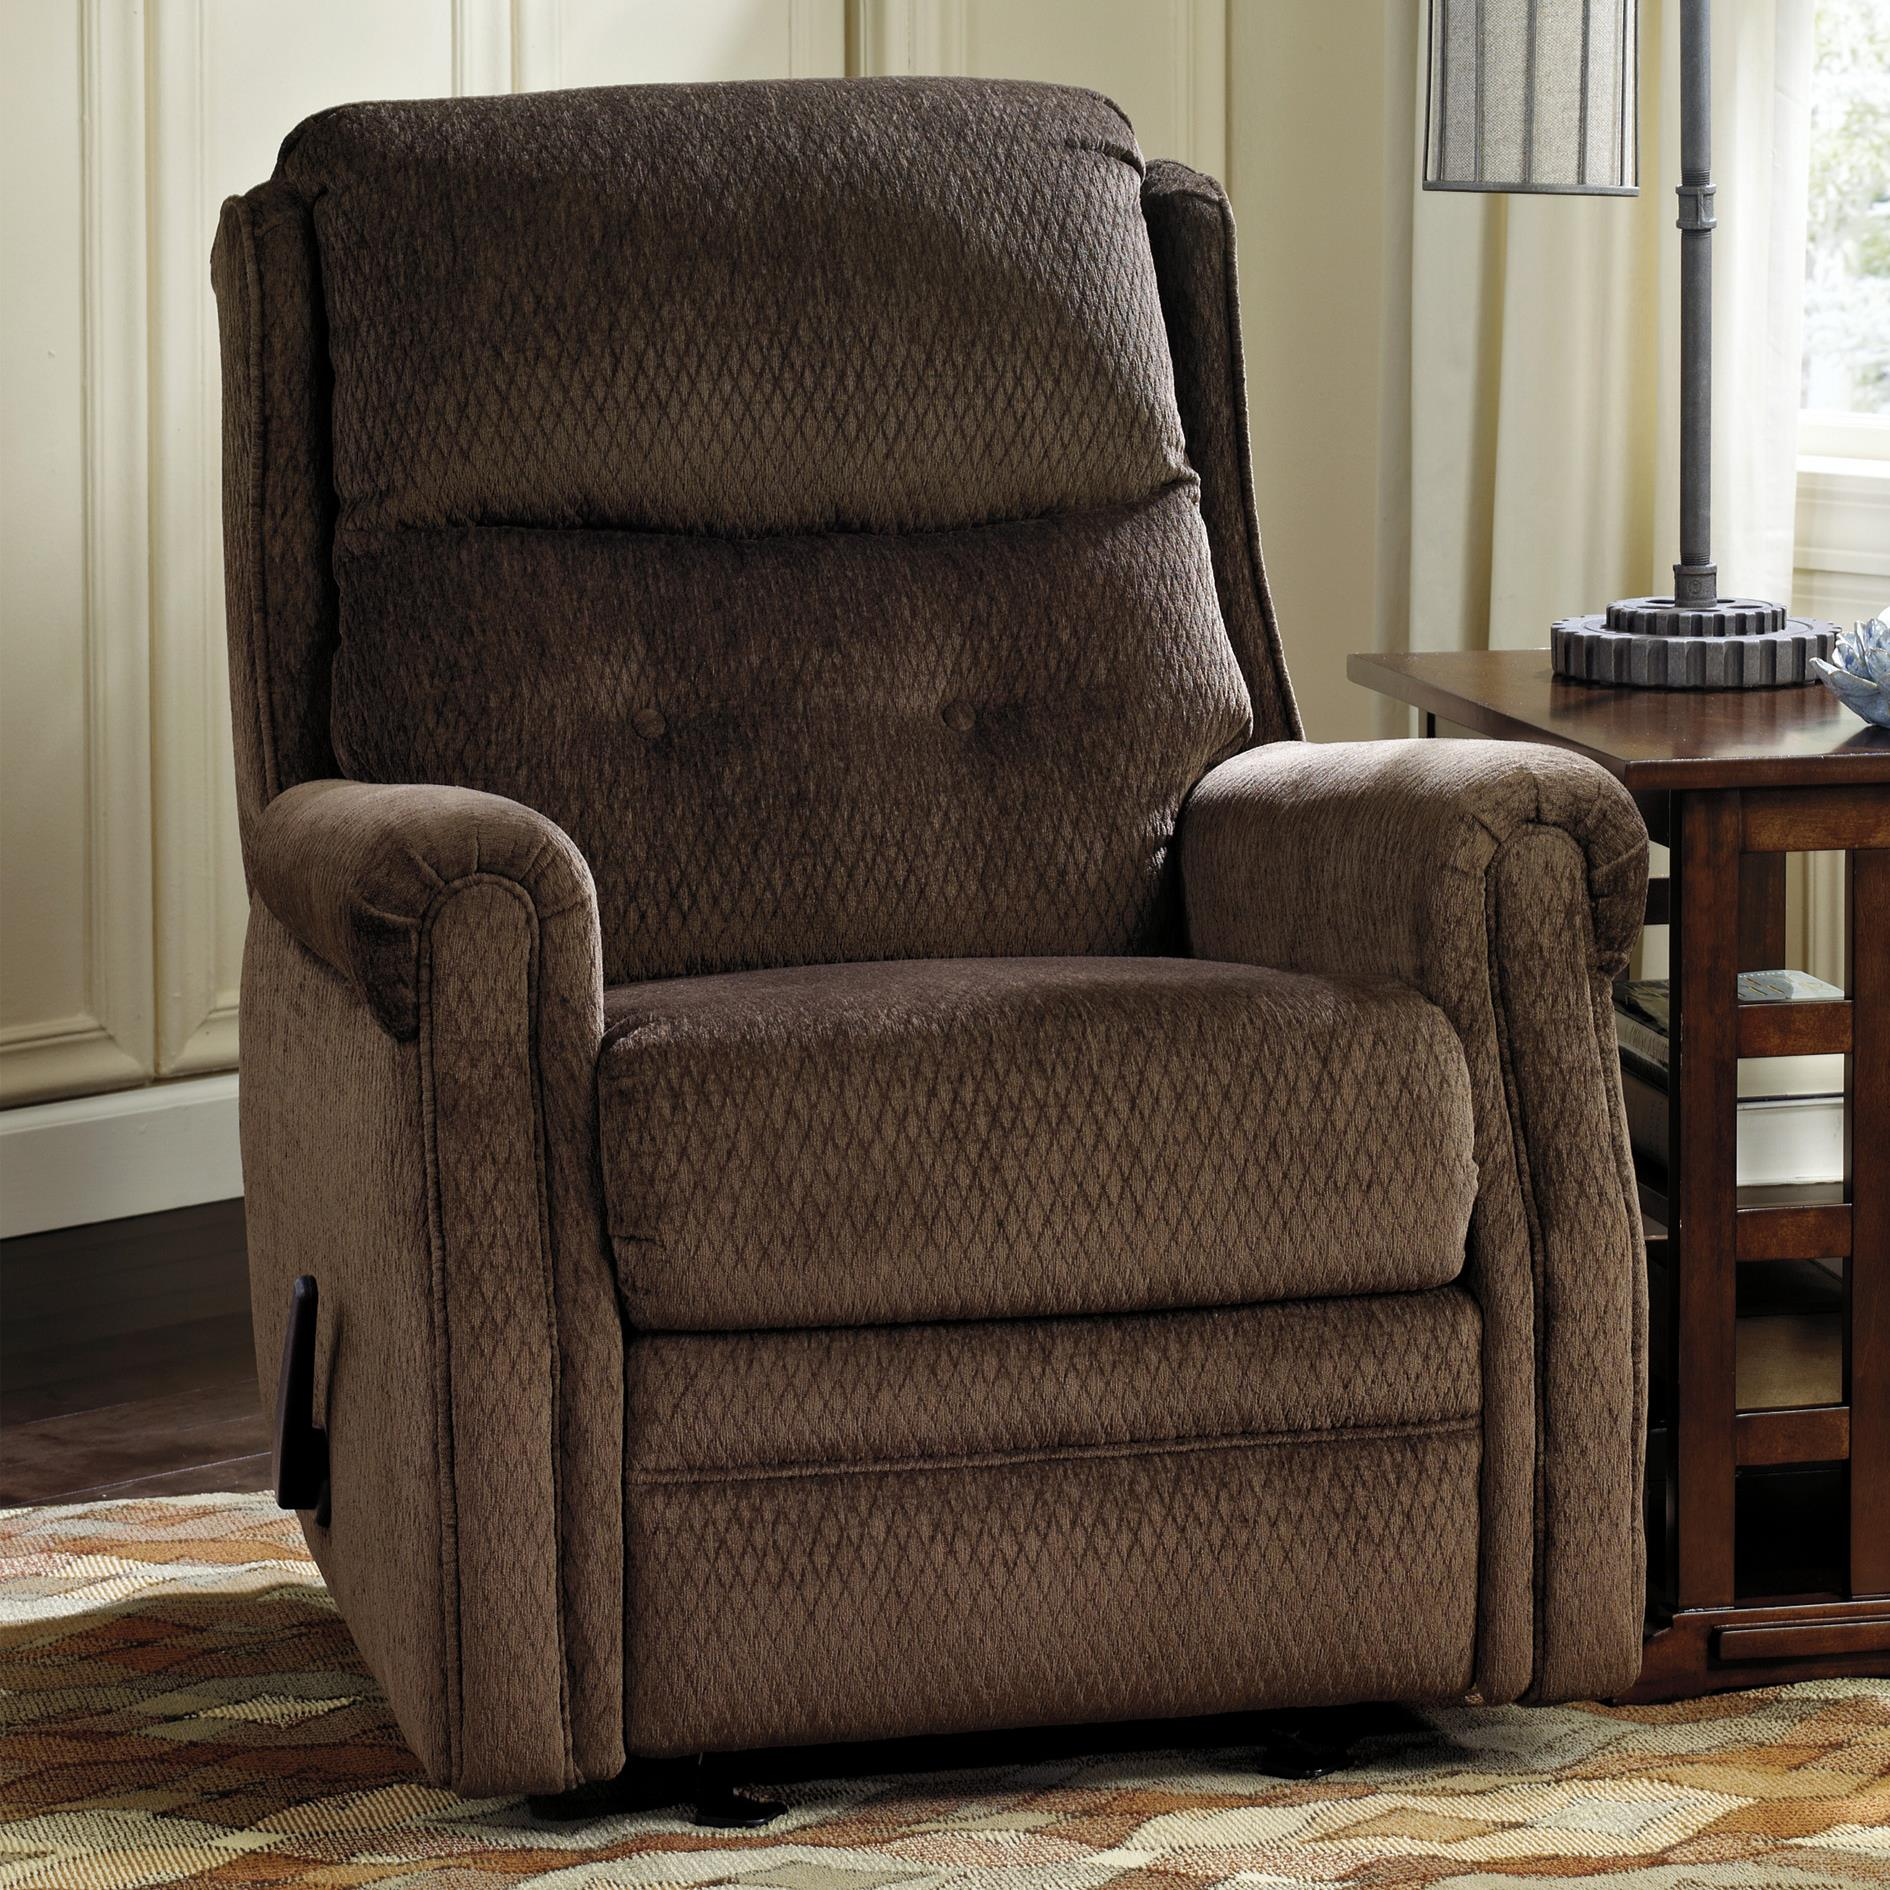 Signature Design by Ashley Meadowbark Glider Recliner - Item Number: 8640527